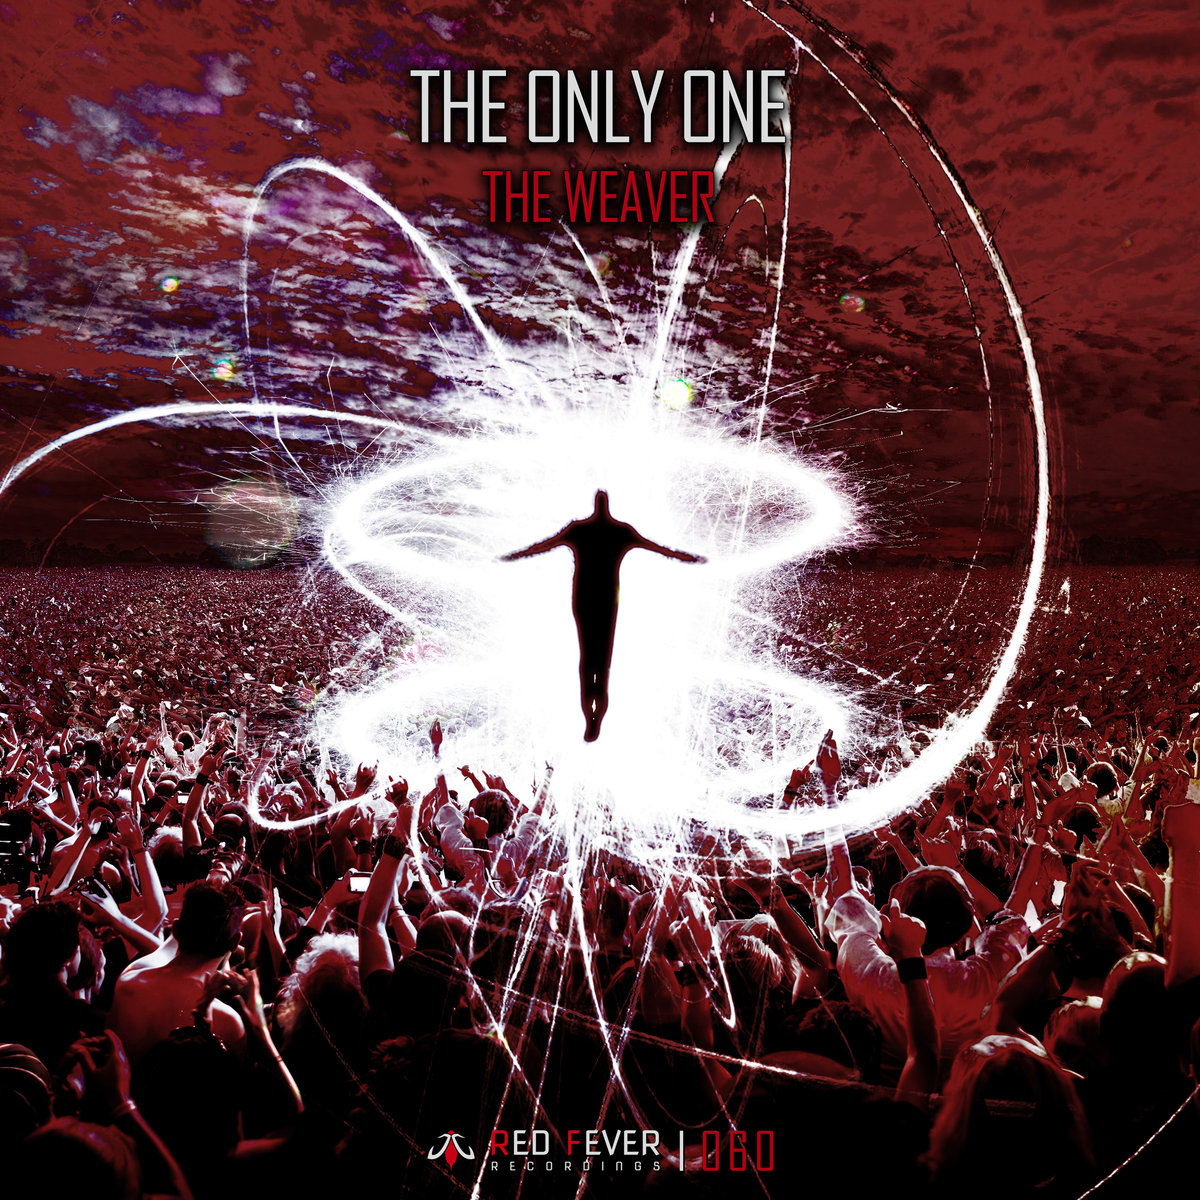 The Weaver - Takes Him Away @ 'The Only One' album (electronic, the weaver)